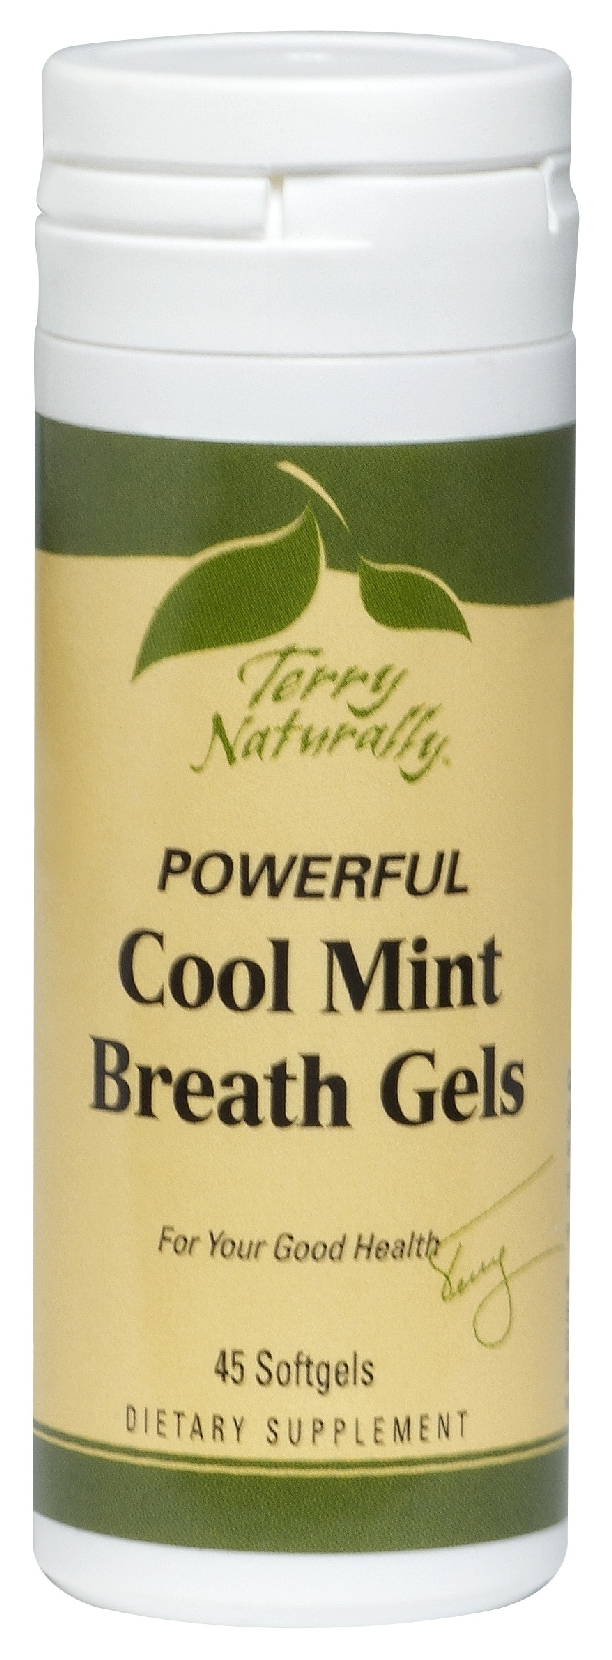 Terry Naturally Cool Mint Breath Gels 45 sgels by EuroPharma